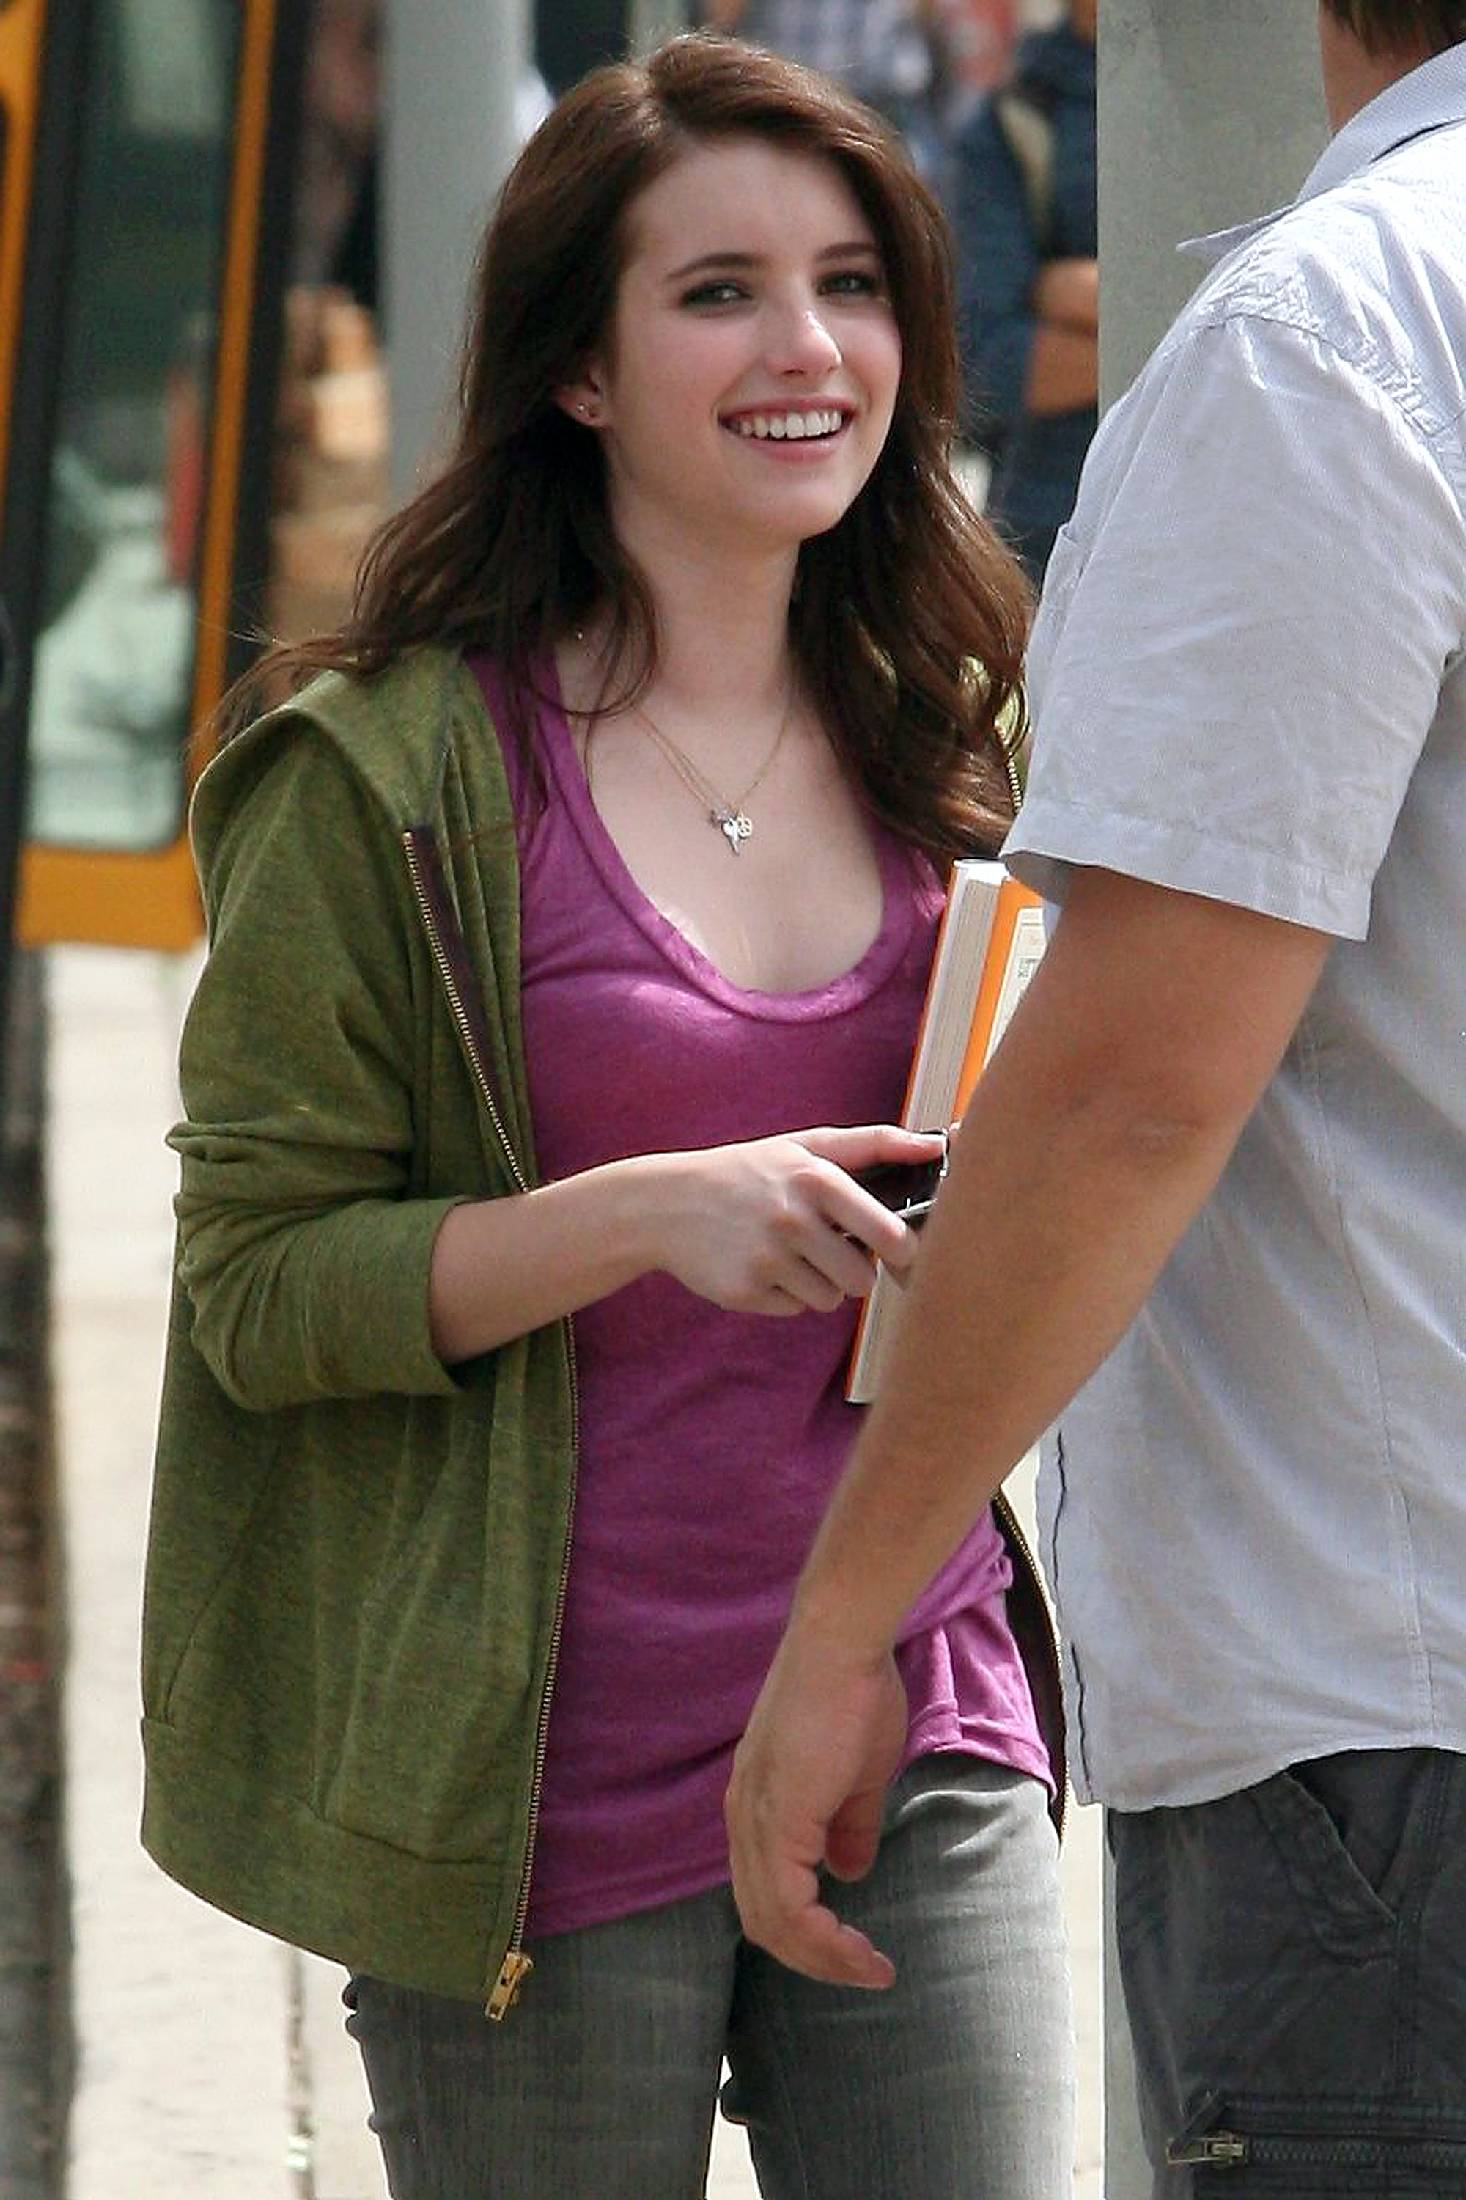 63287_Emma_Roberts_On_the_set_of_Valentine41s_Day_in_Santa_Monica1_122_494lo.jpg